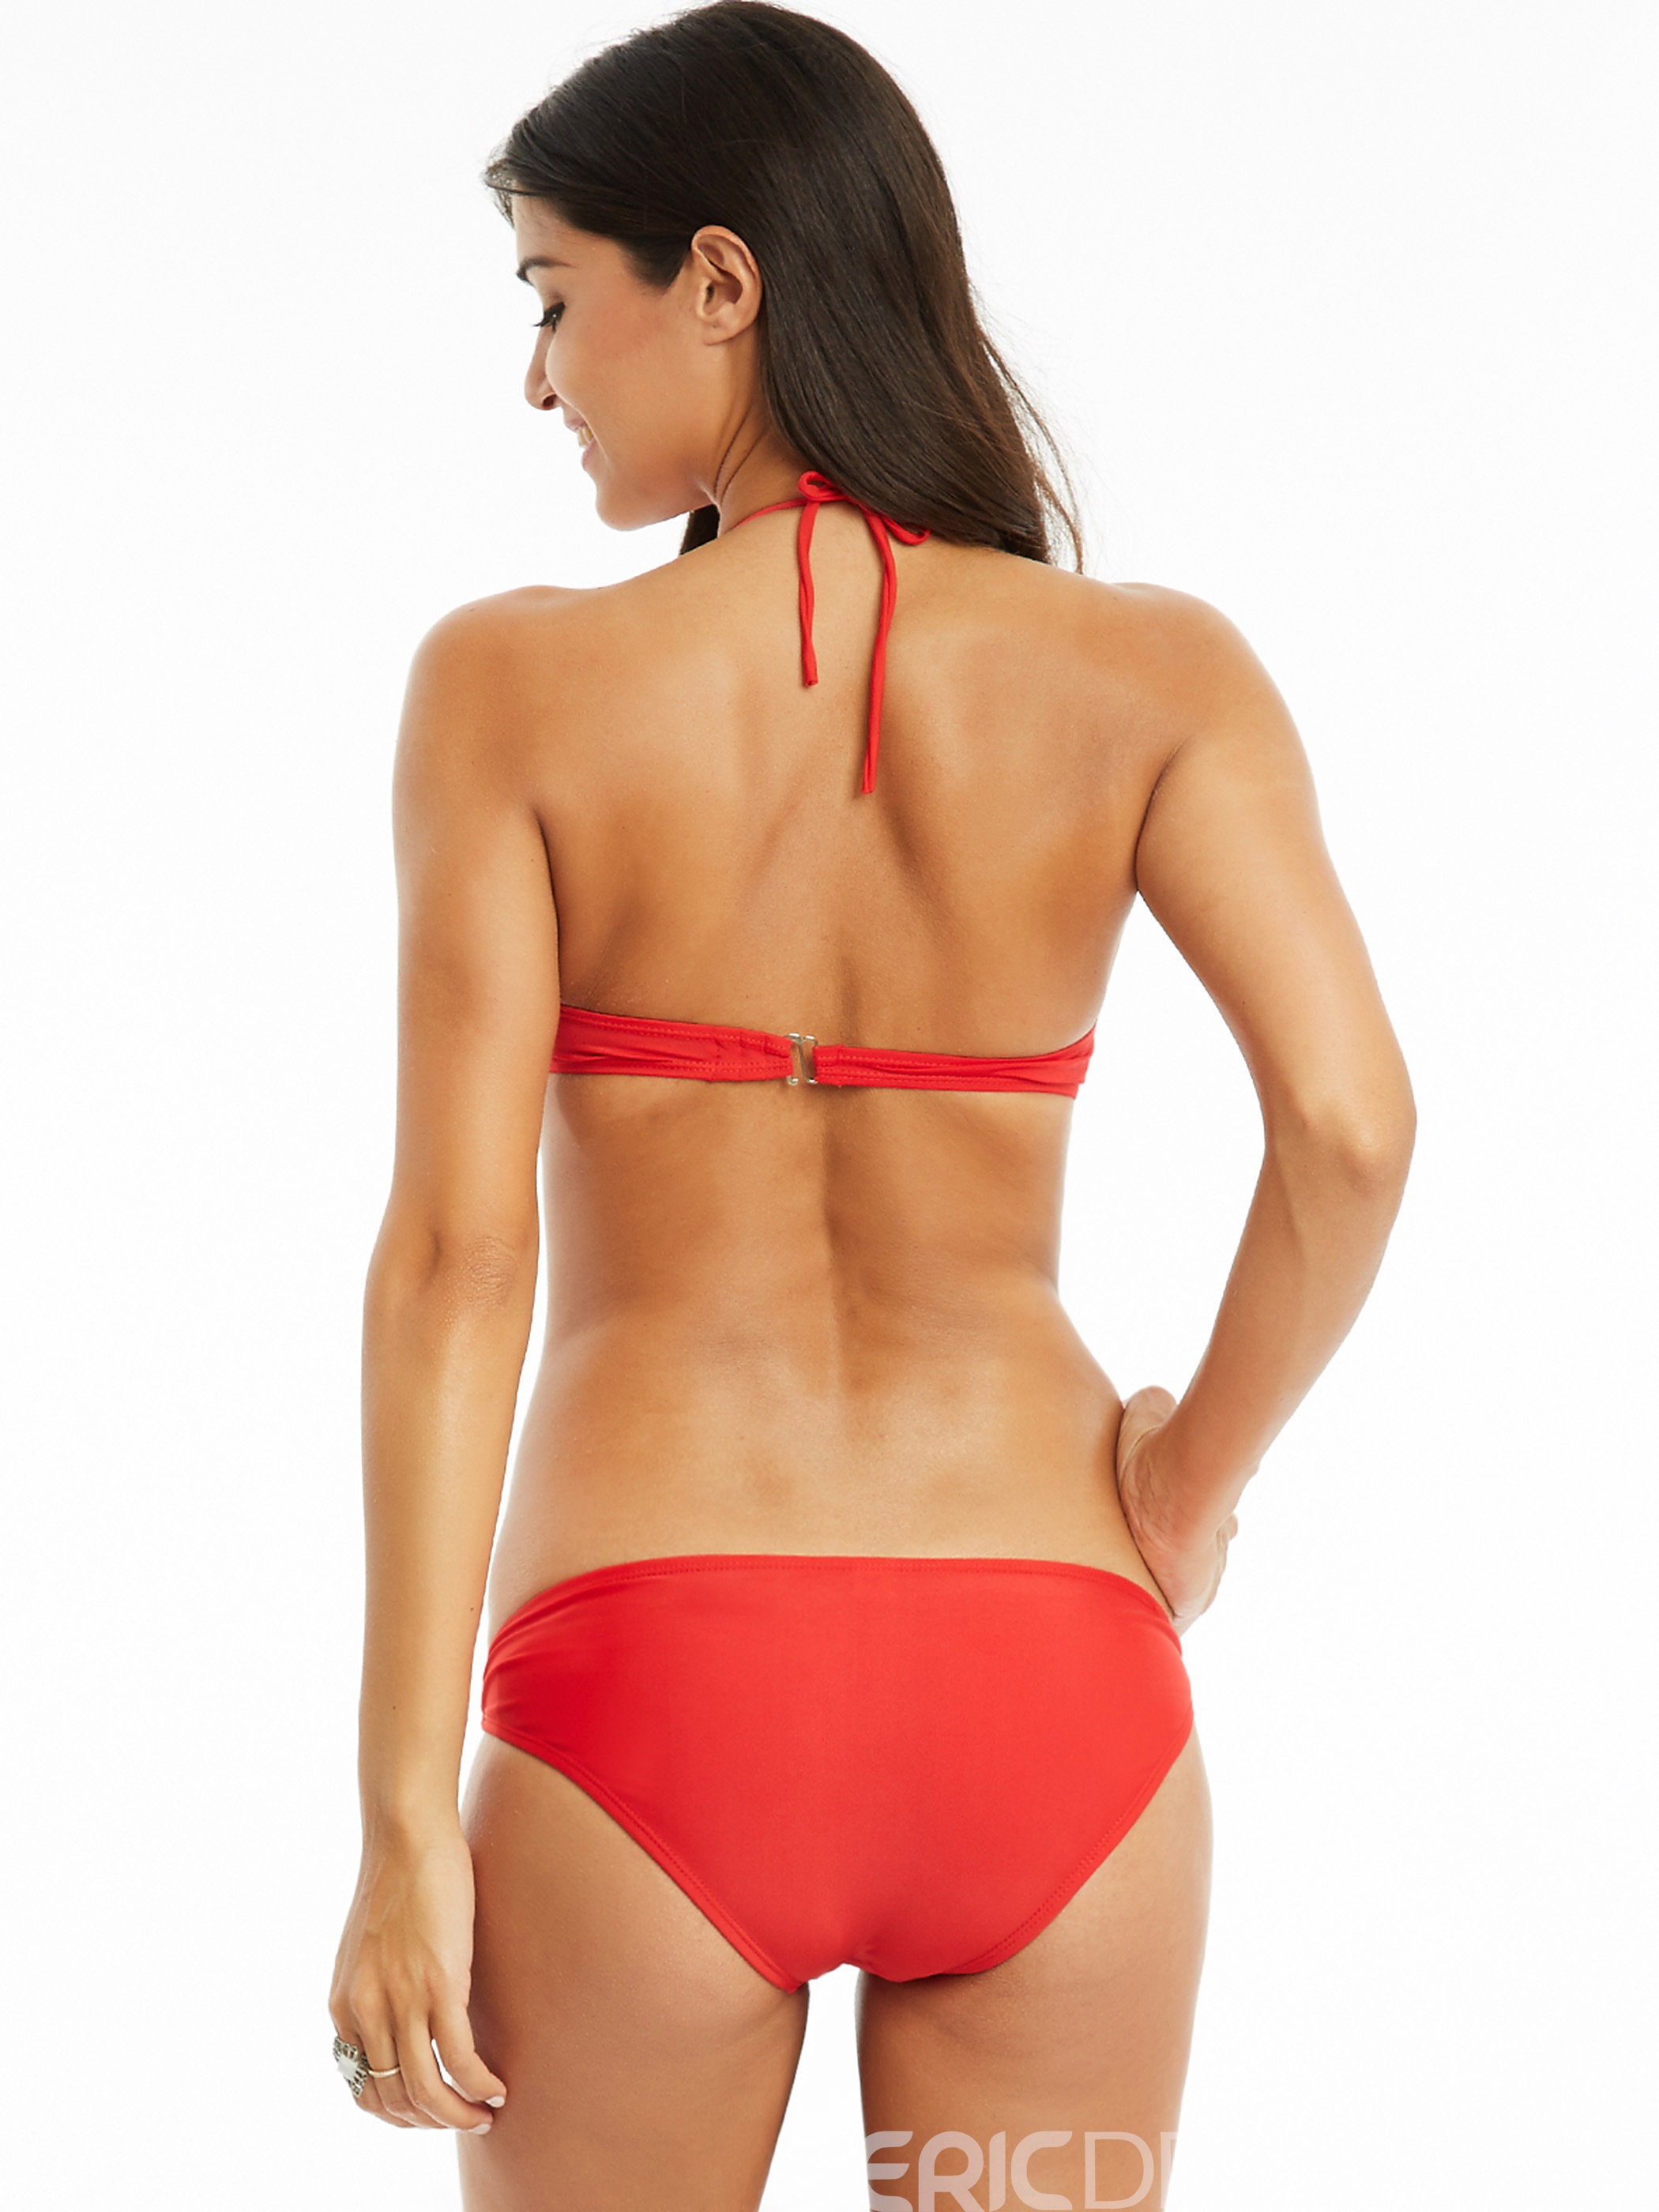 Ericdress Unique Hollow Grid Red Bikini Set